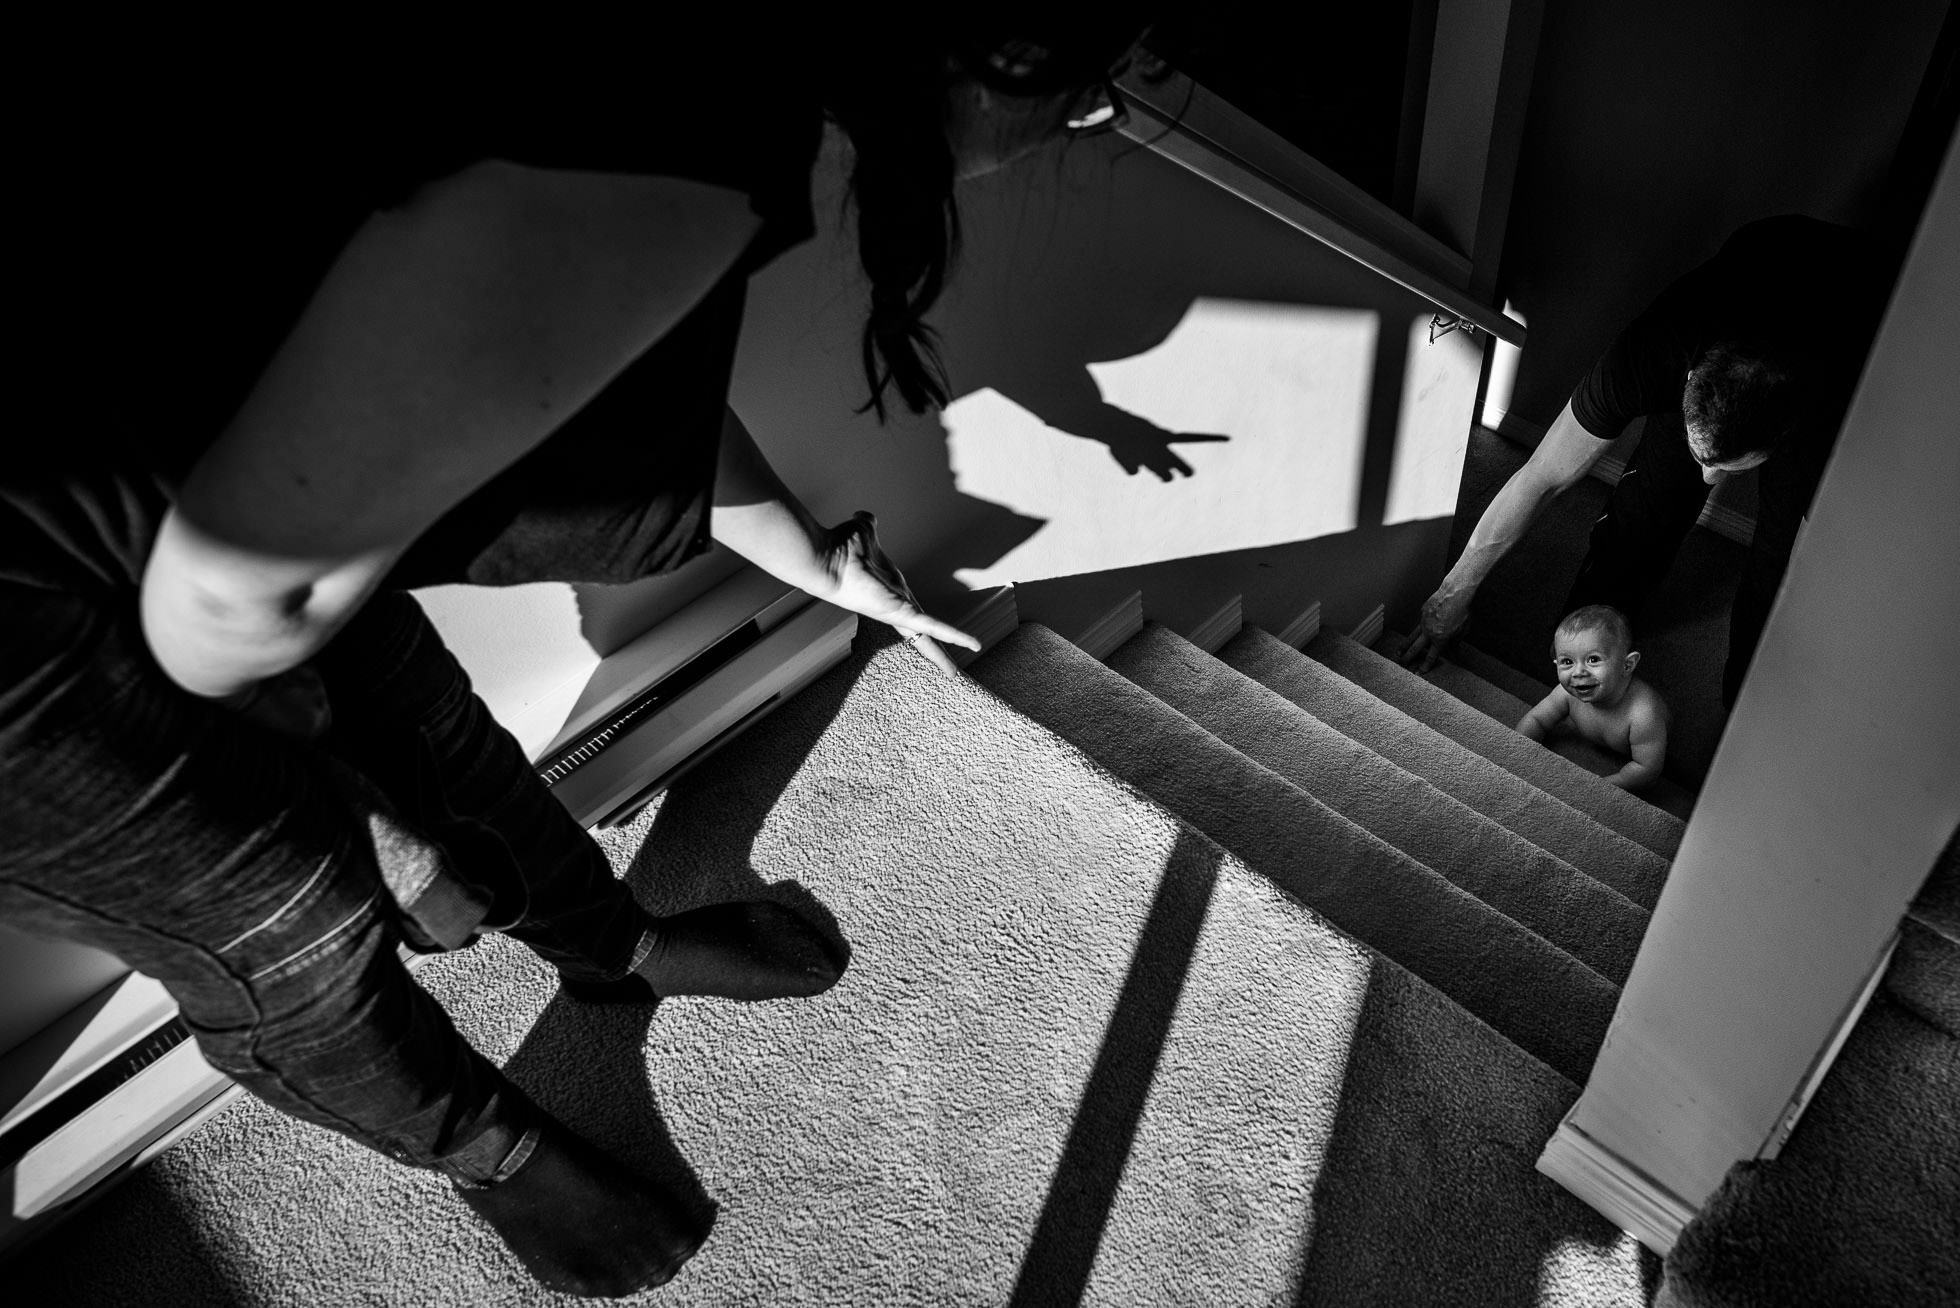 baby crawling up the stairs for the first time with mom and dad helping and encouraging